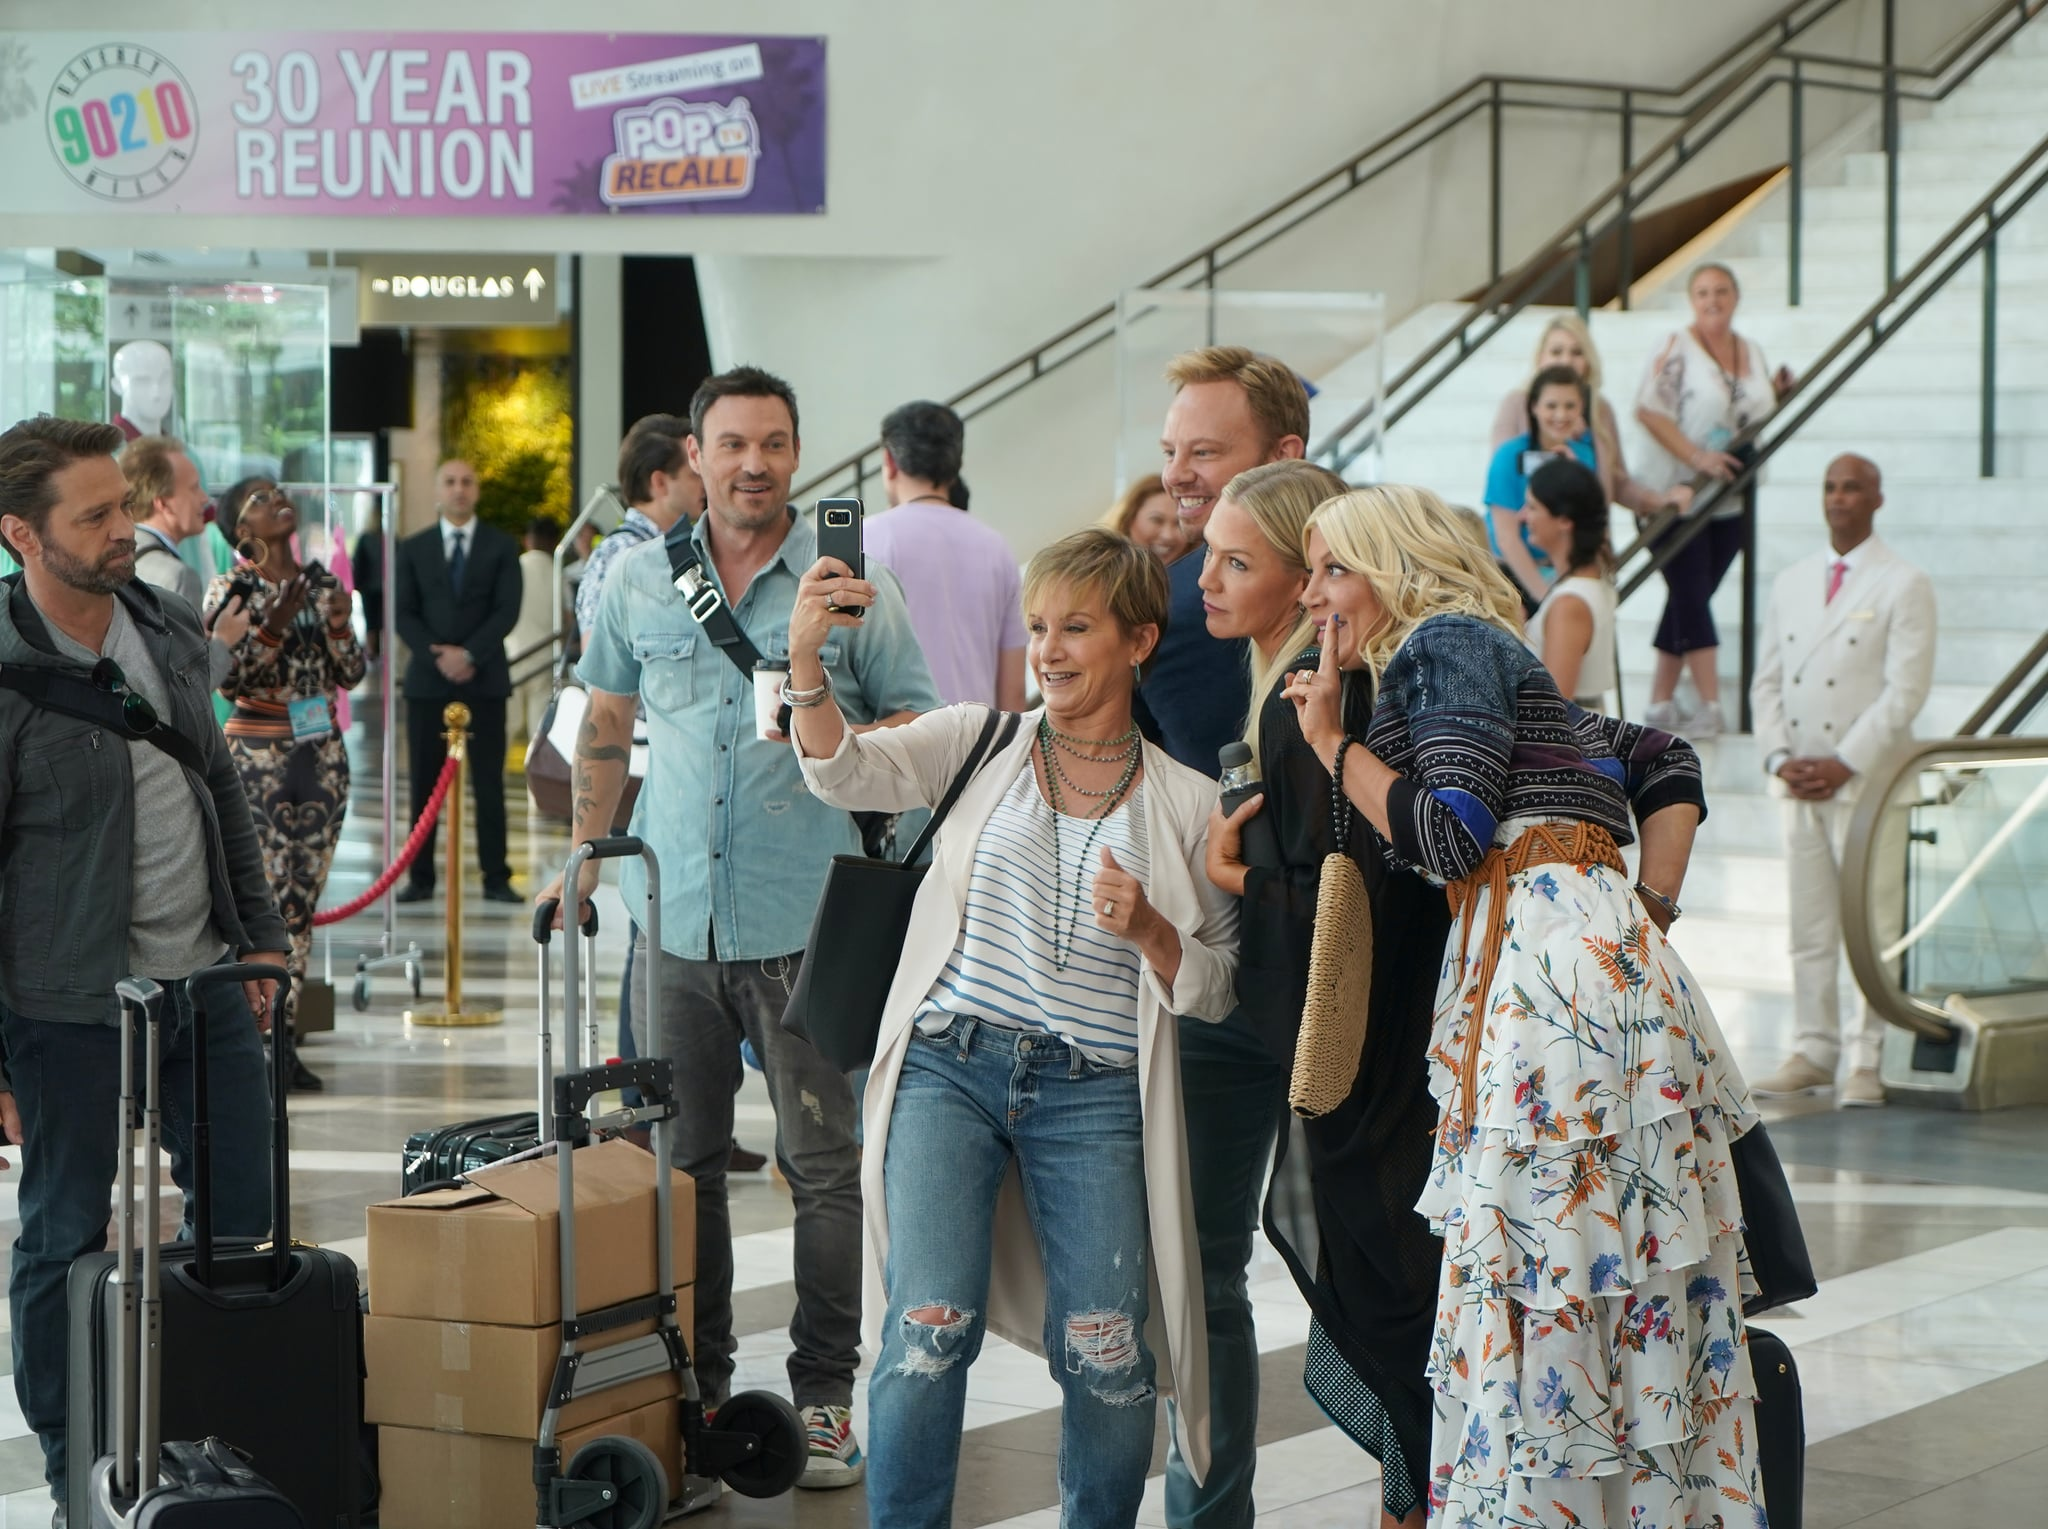 BH90210:  L-R: Jason Priestley, Brian Austin Green, Gabrielle Carteris, Ian Ziering, Jennie Garth and Tori Spelling in the BH90210